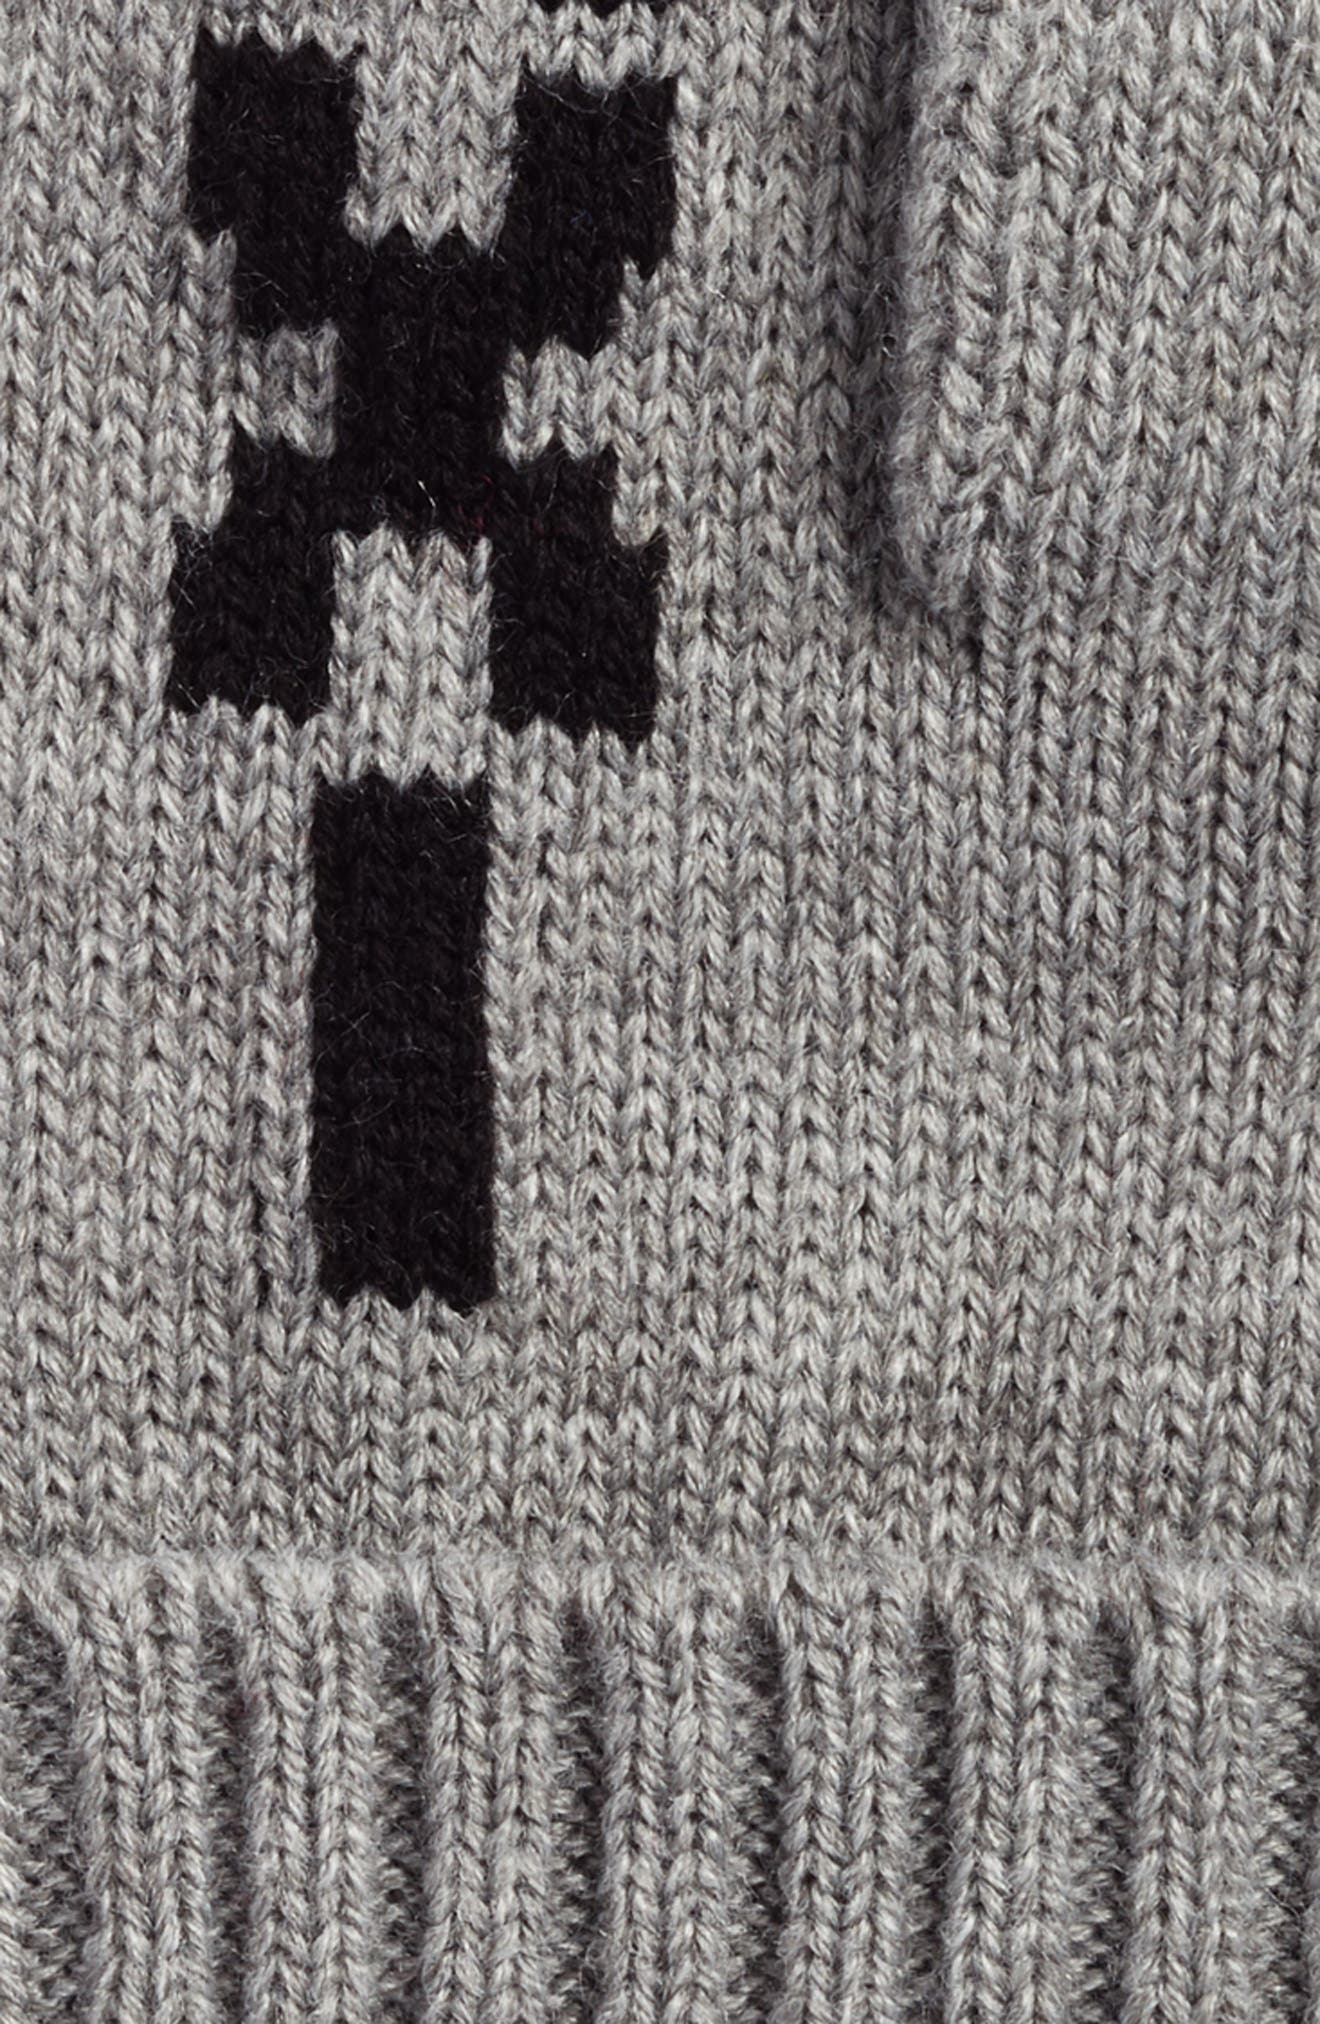 taxi mittens,                             Alternate thumbnail 2, color,                             Heather Gray/ Black